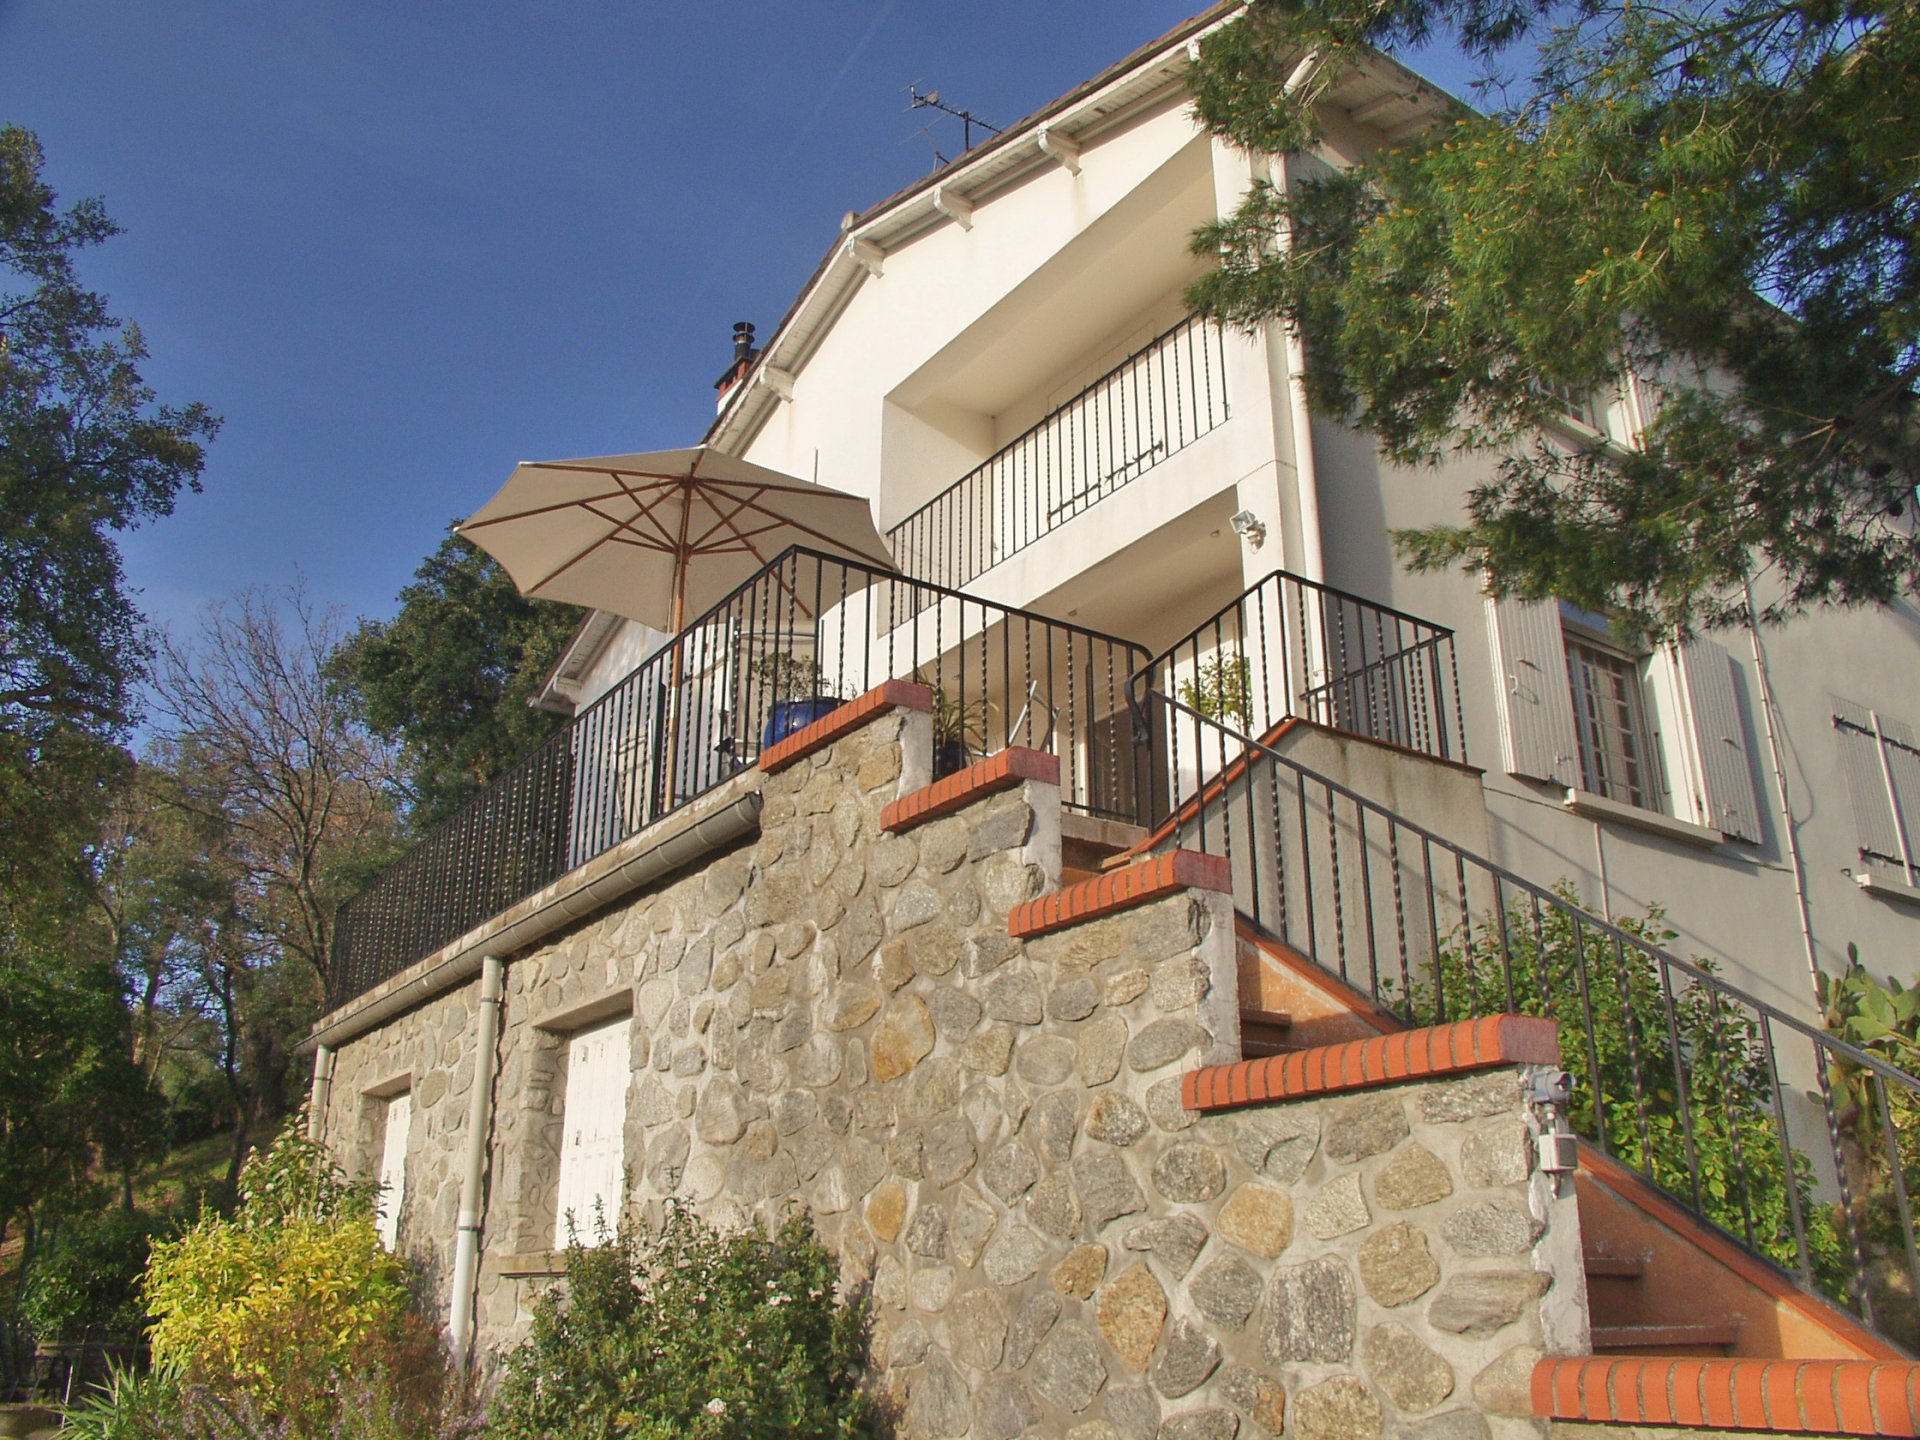 LARGE FAMILY HOME WITH GARDEN, OUTBUILDINGS AND VIEWS, MAUREILLAS